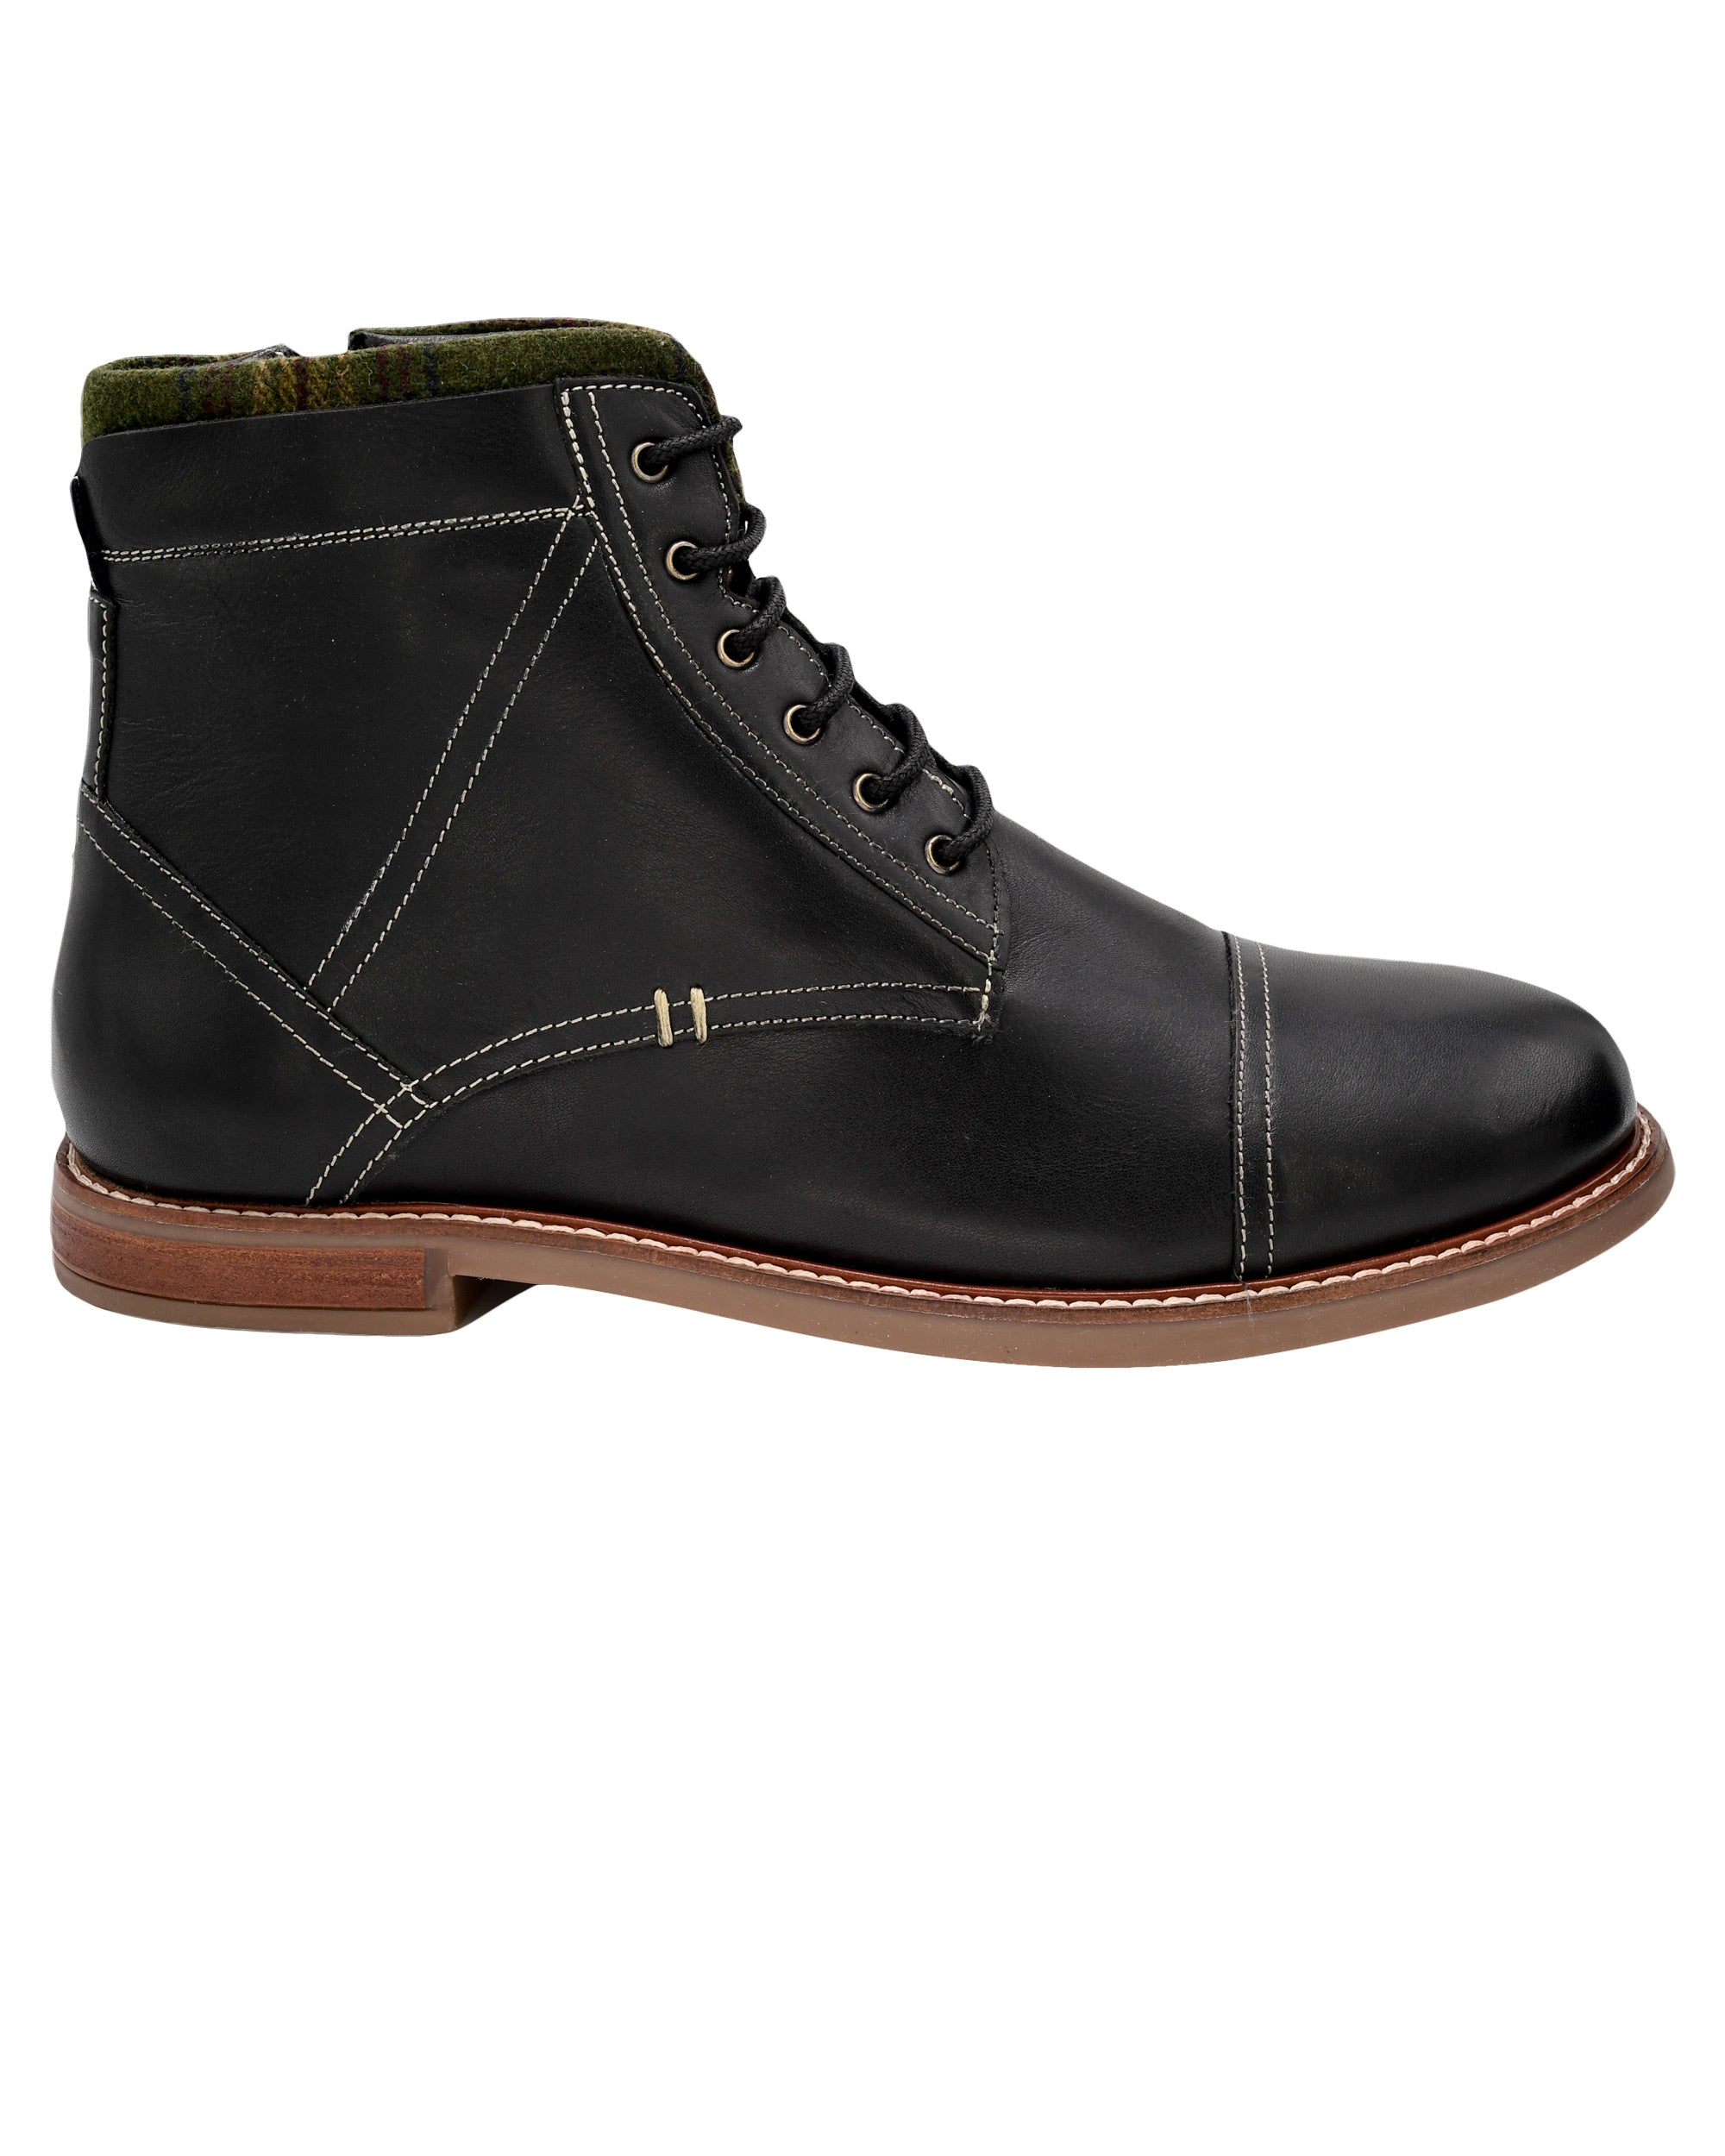 Leon Cap-Toe Lace-Up Boot - Black